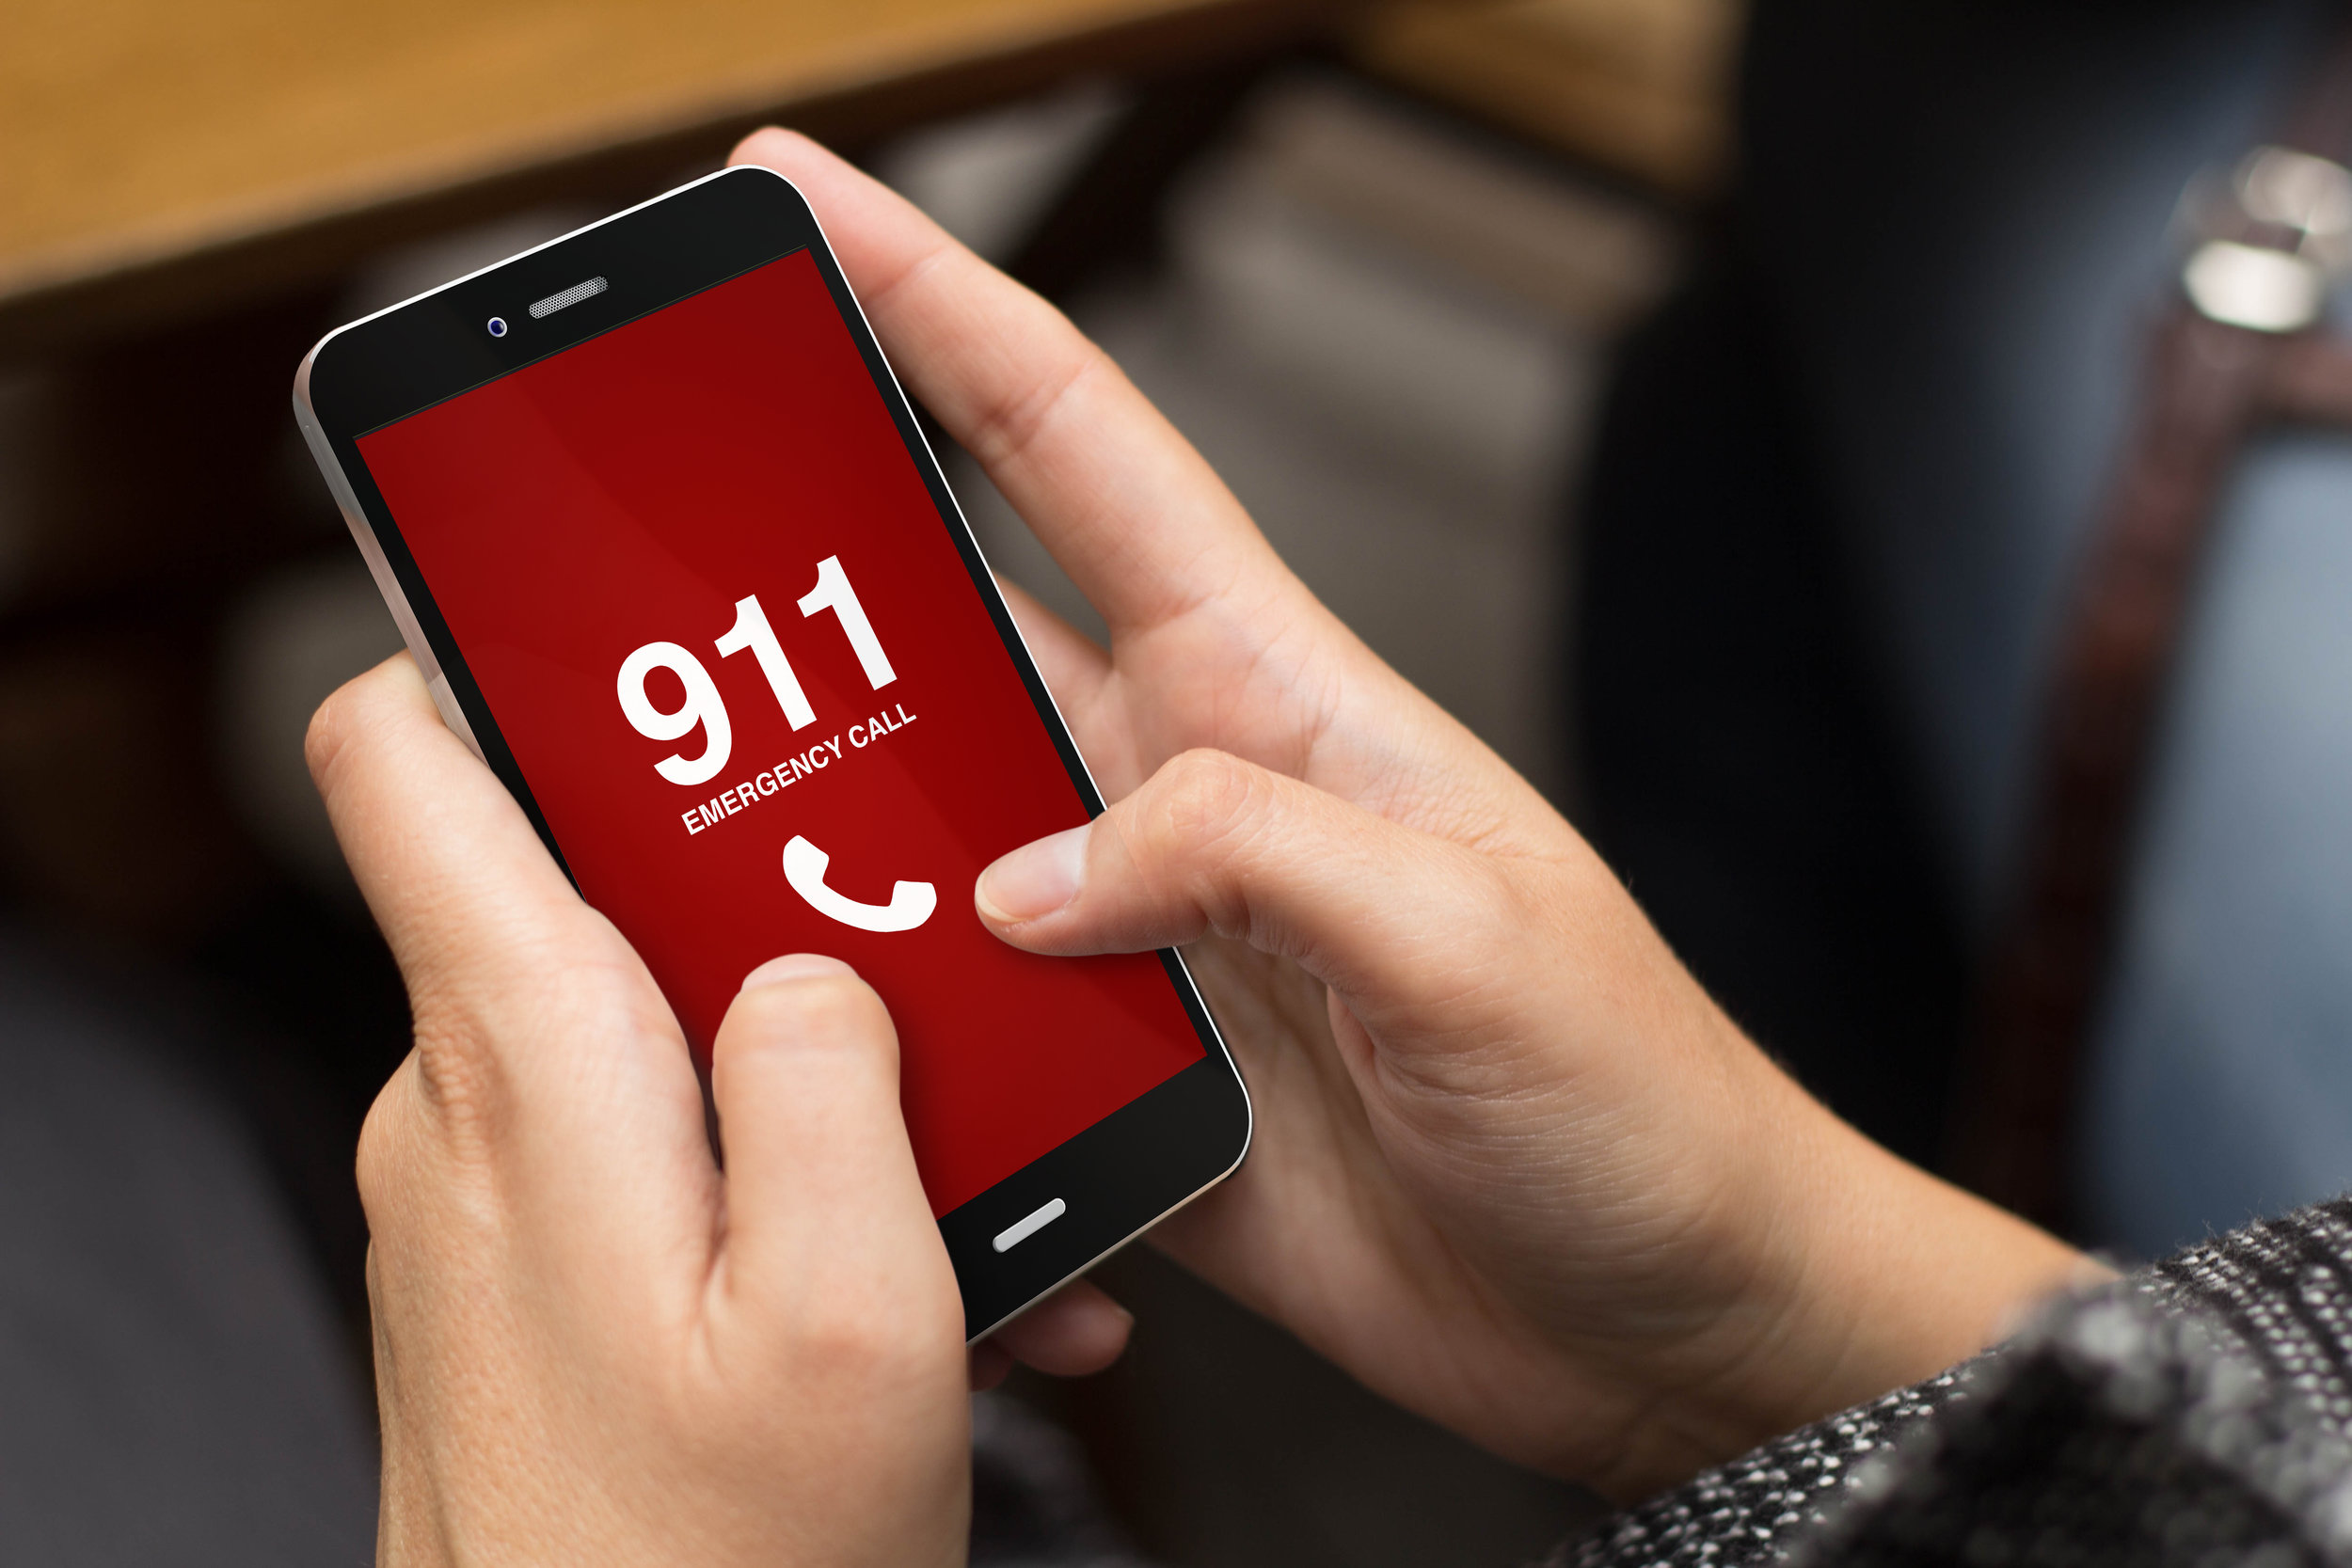 Need to Call 911? There's an App For That! — Technology Safety